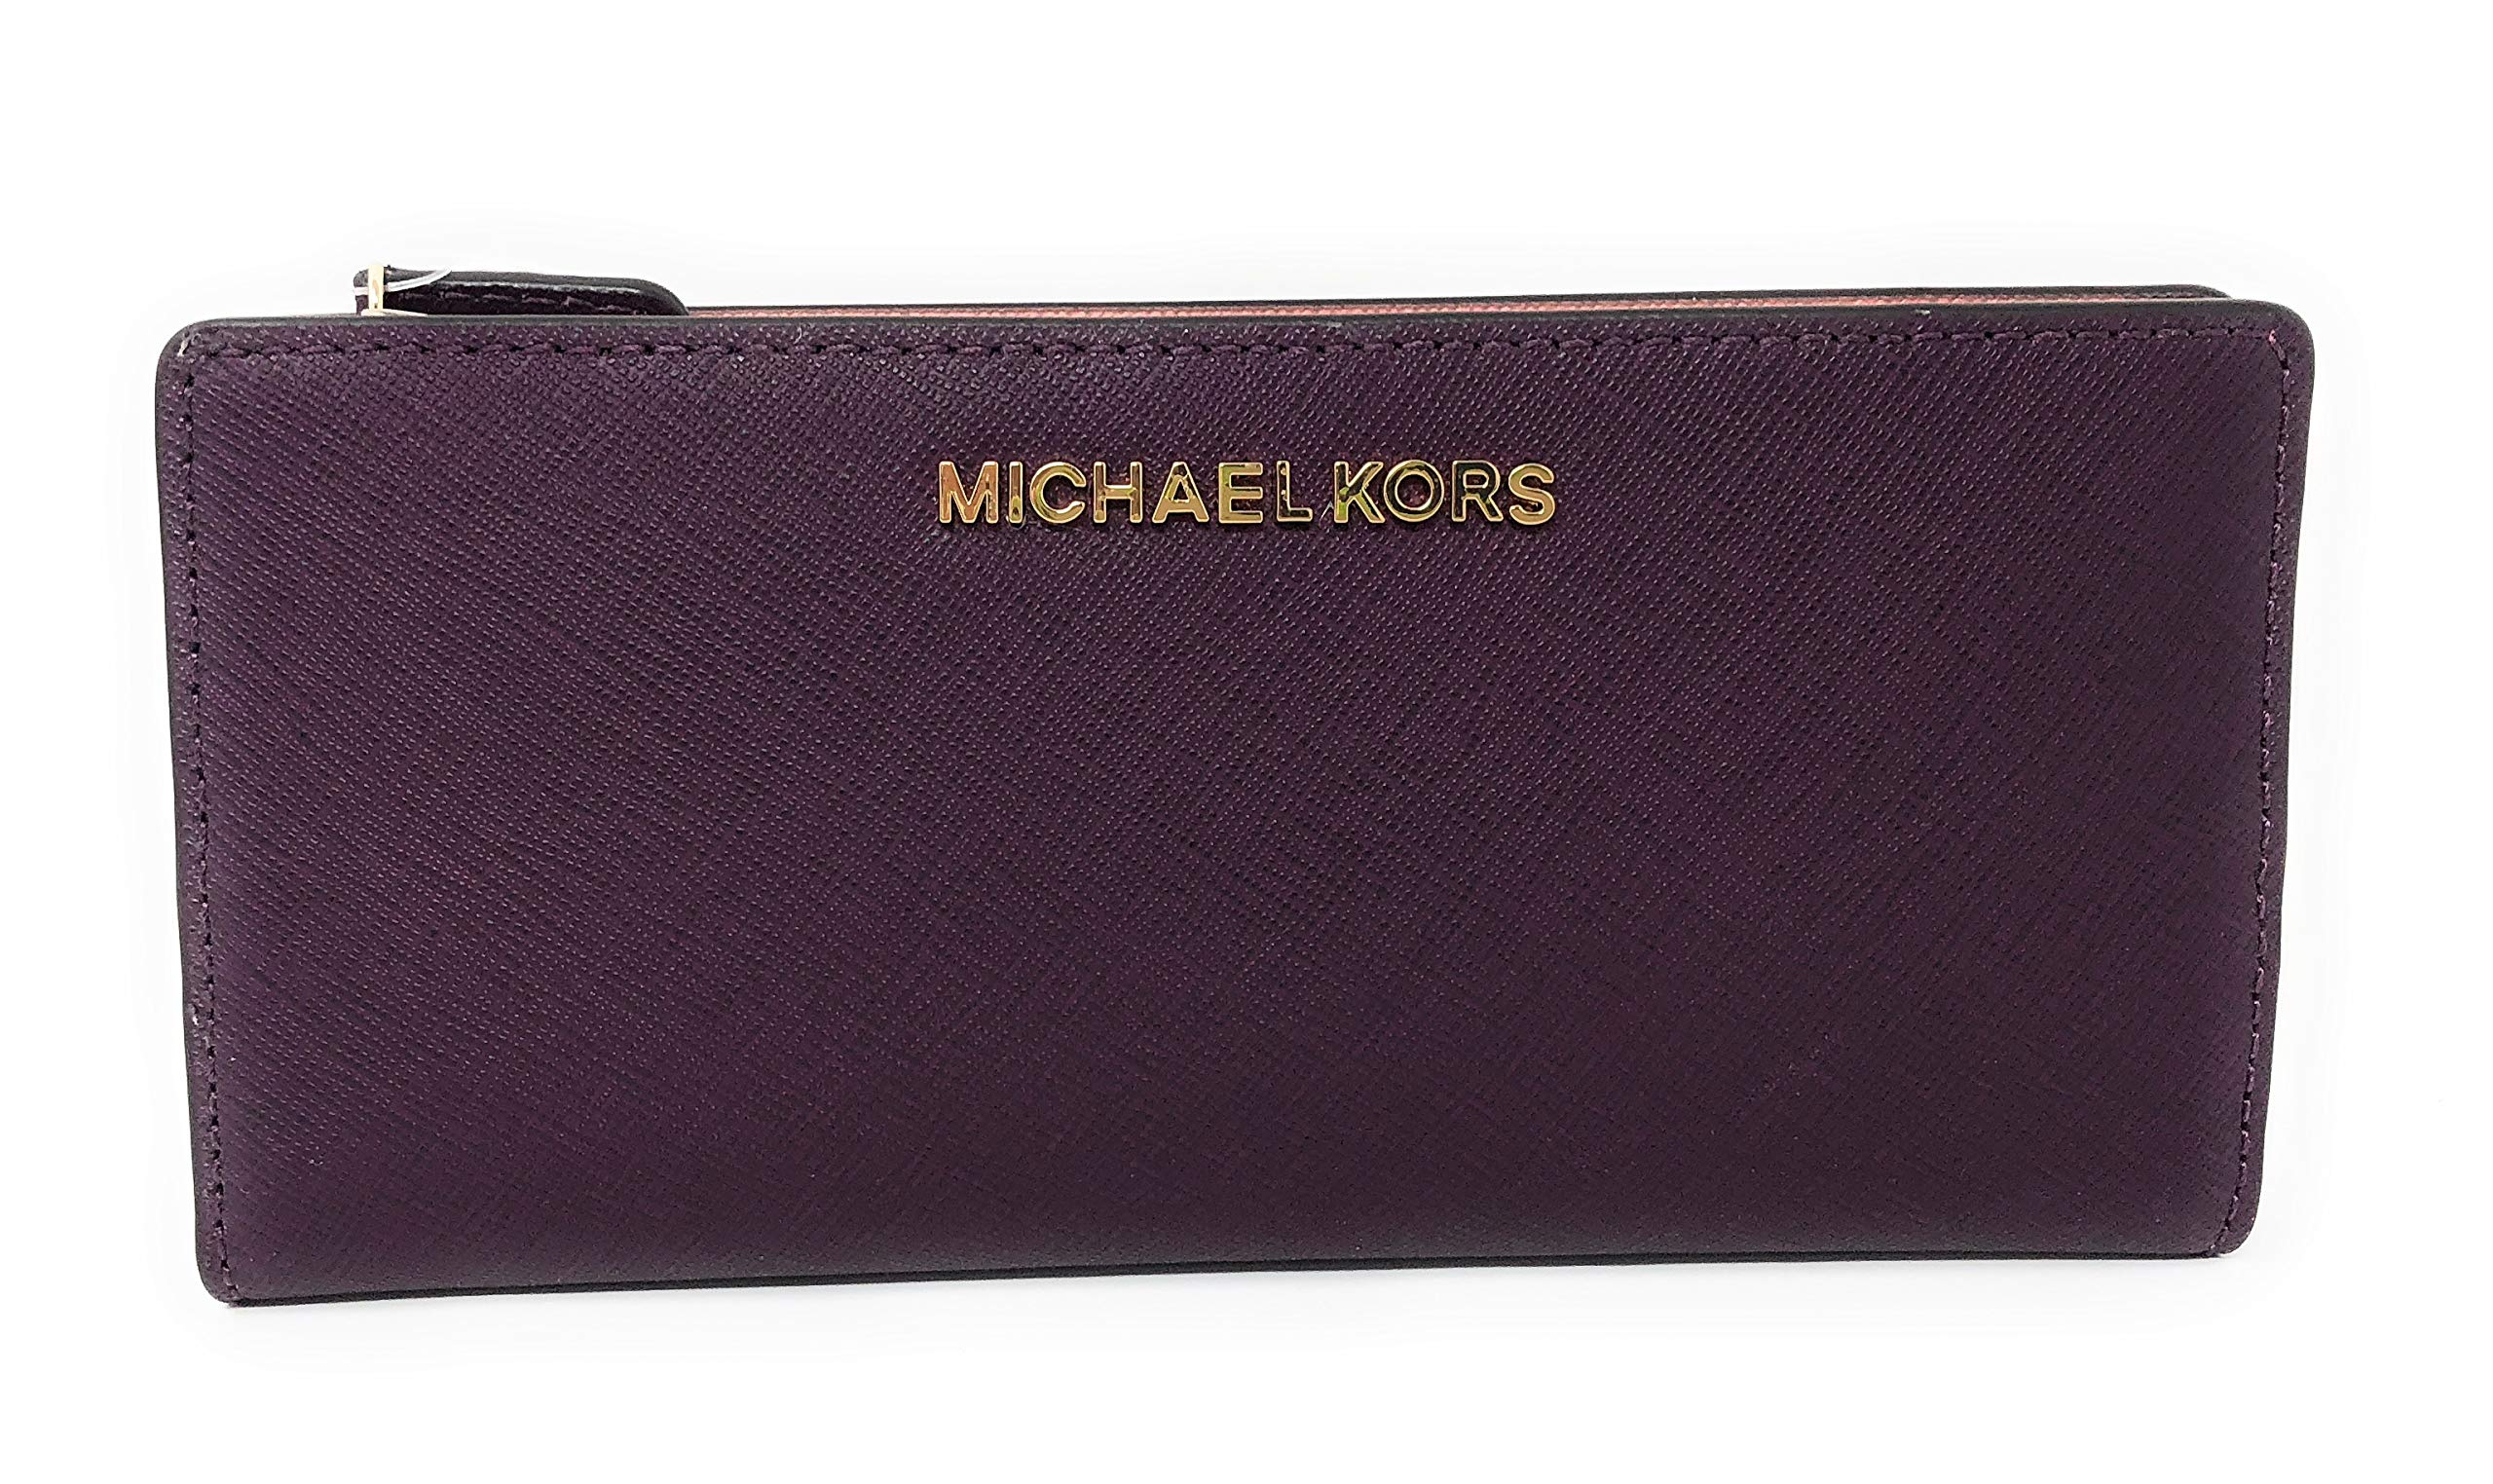 Michael Kors Jet Set Travel Large Card Case Carryall Leather Wallet in Damson Multi